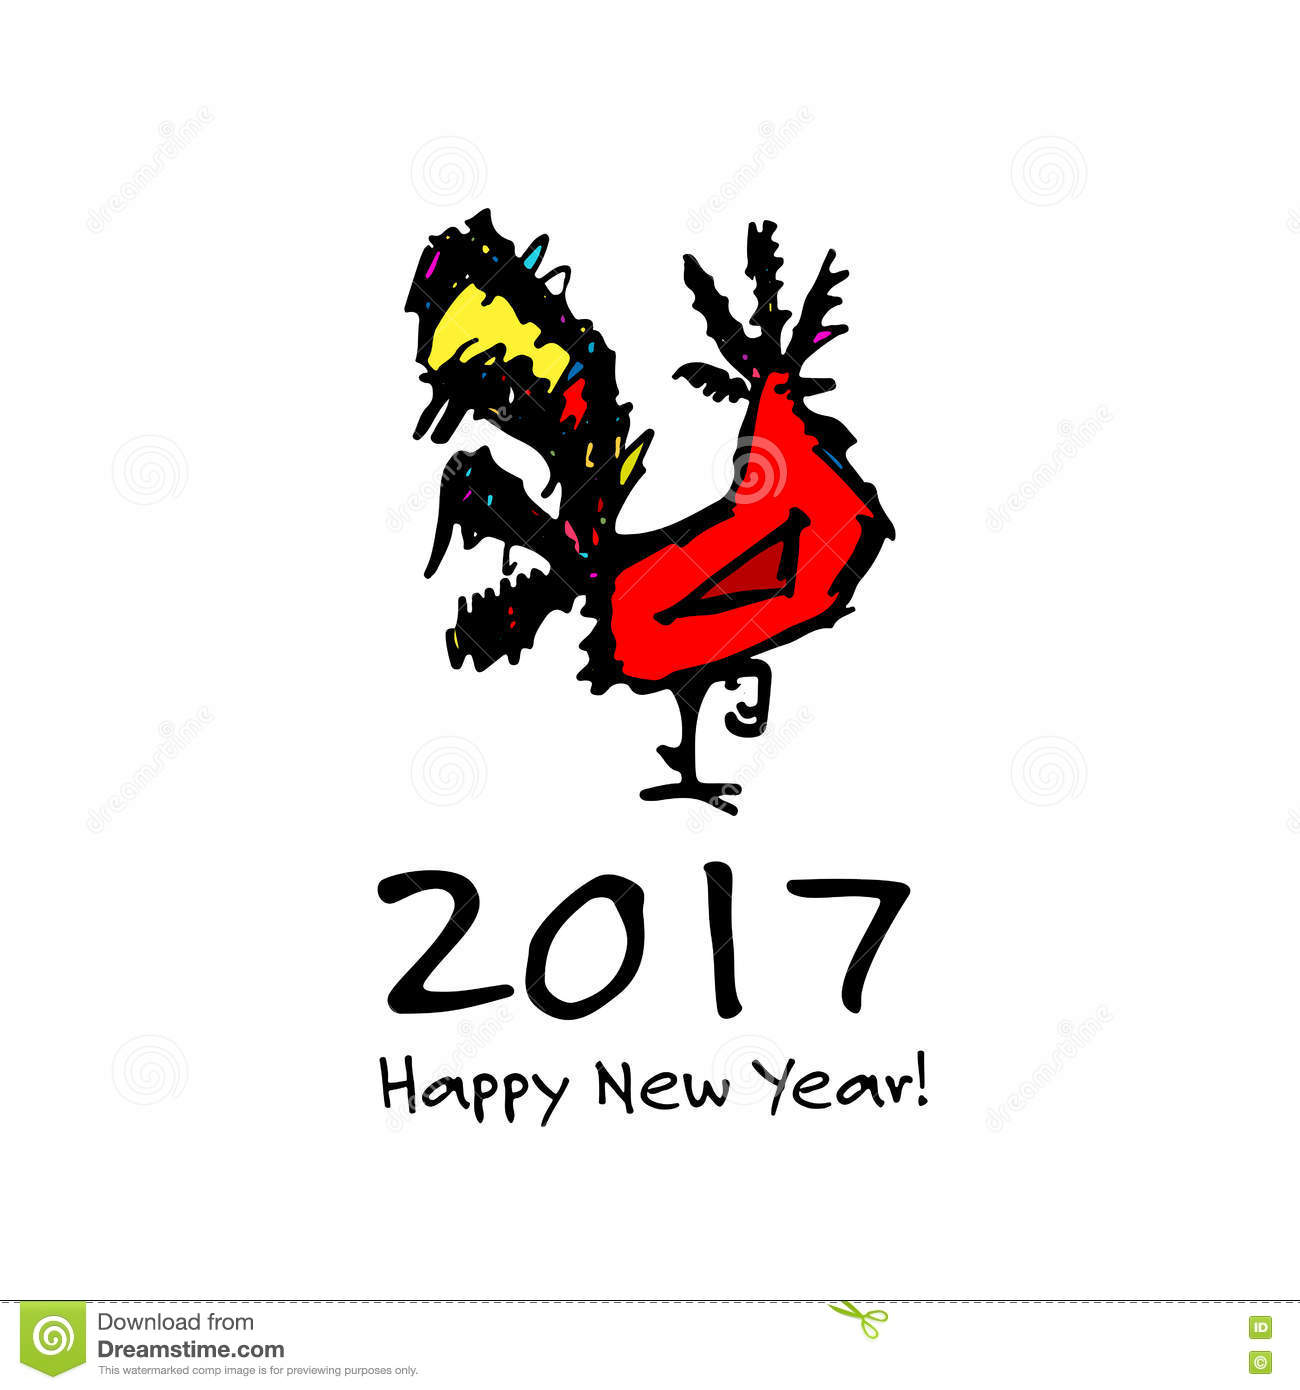 Funny Rooster Symbol Of 2017 New Year Stock Vector Illustration